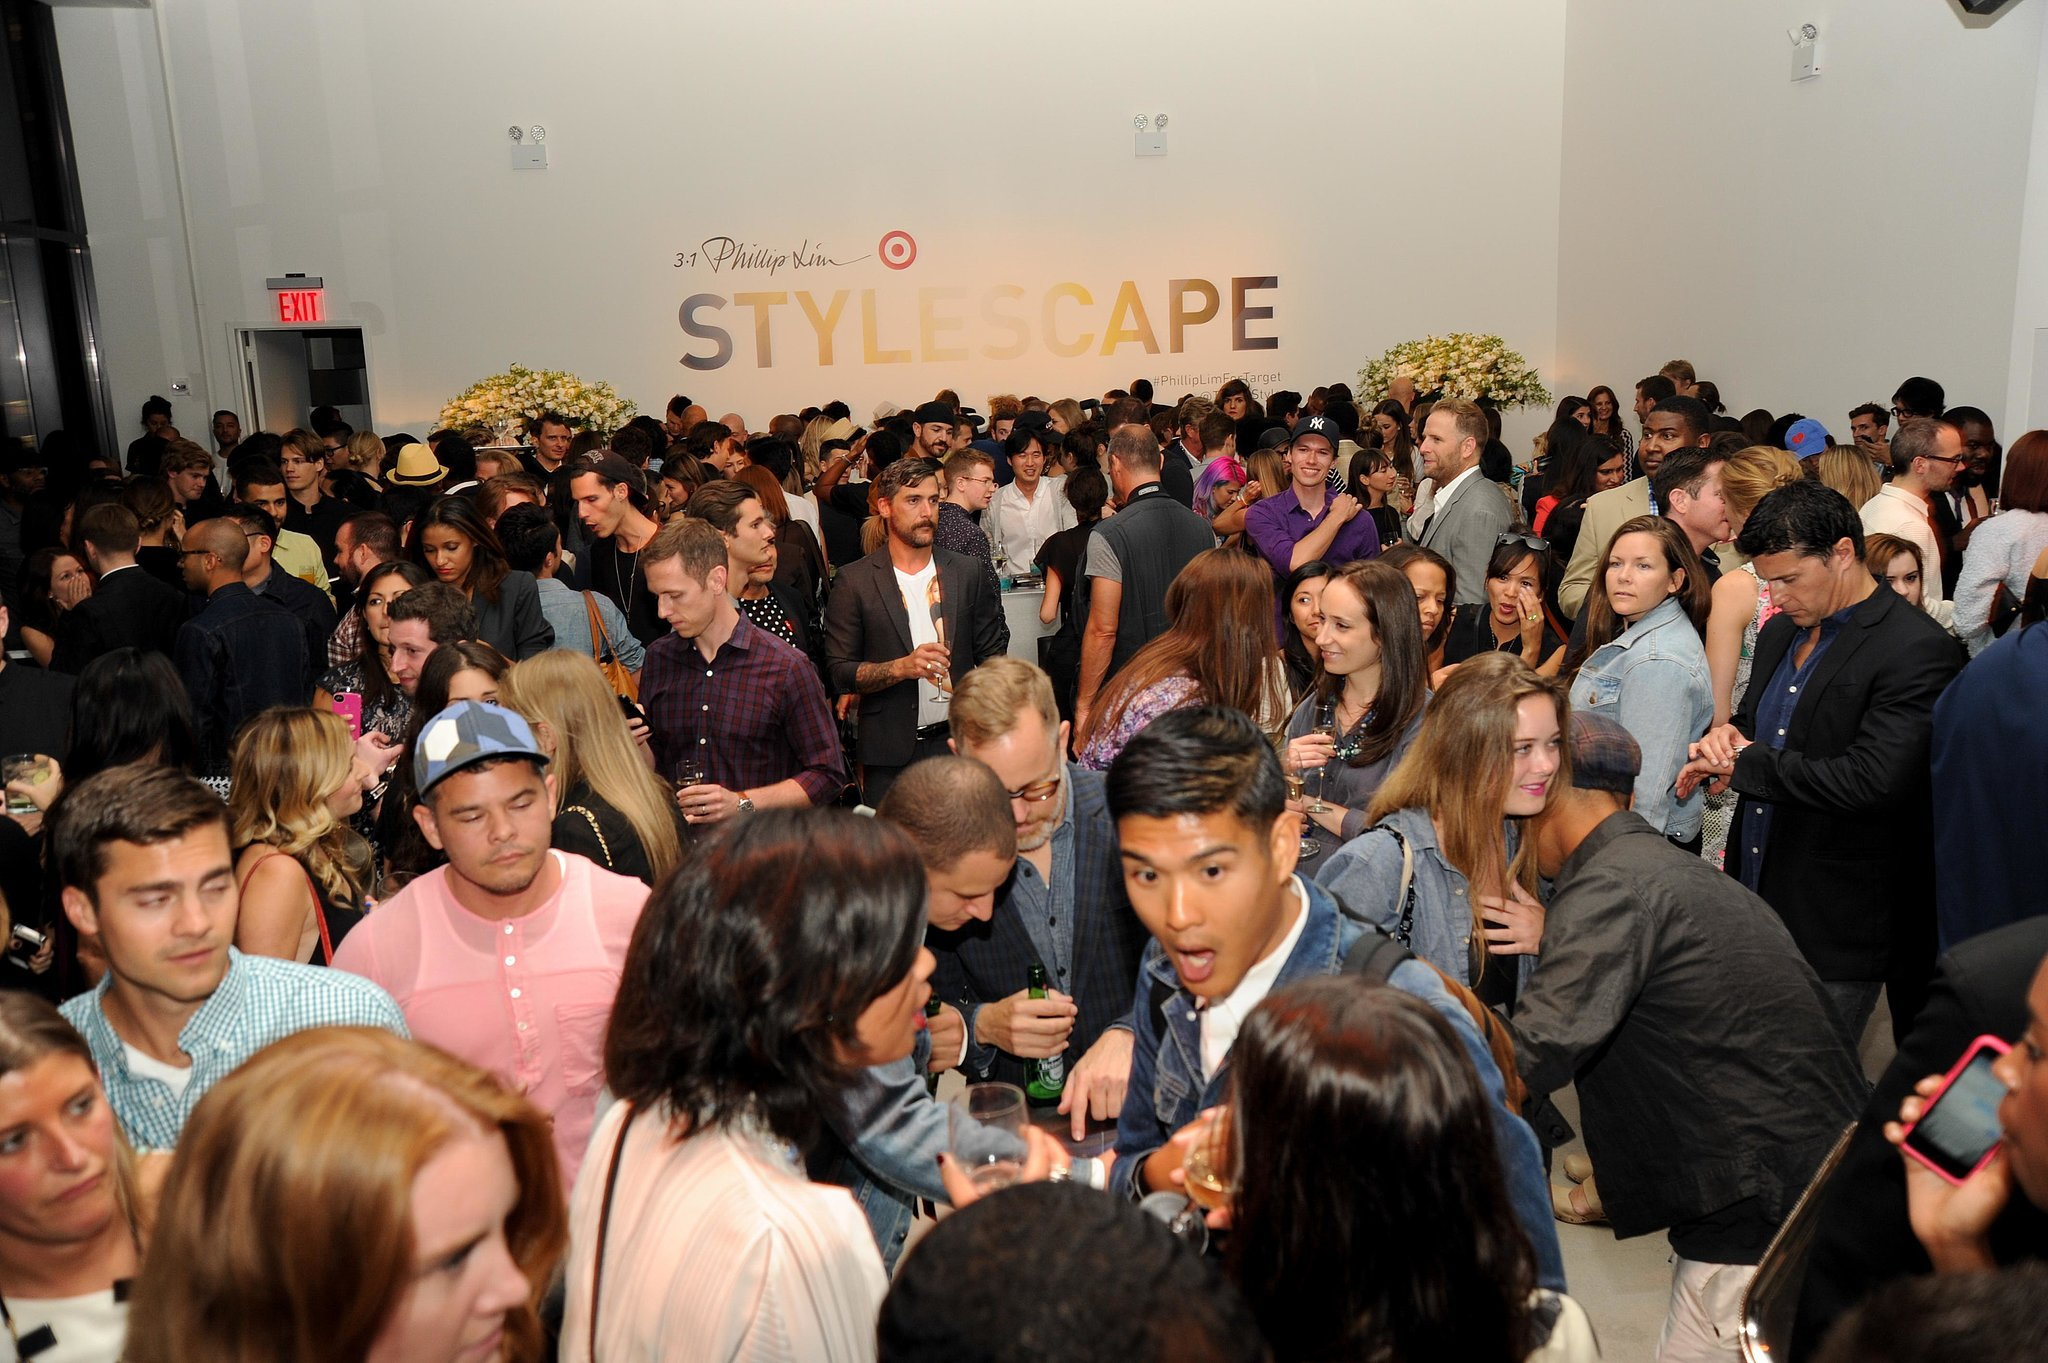 The scene at the party was, in a word, crowded — but what else would you expect for a highly popular collaboration?